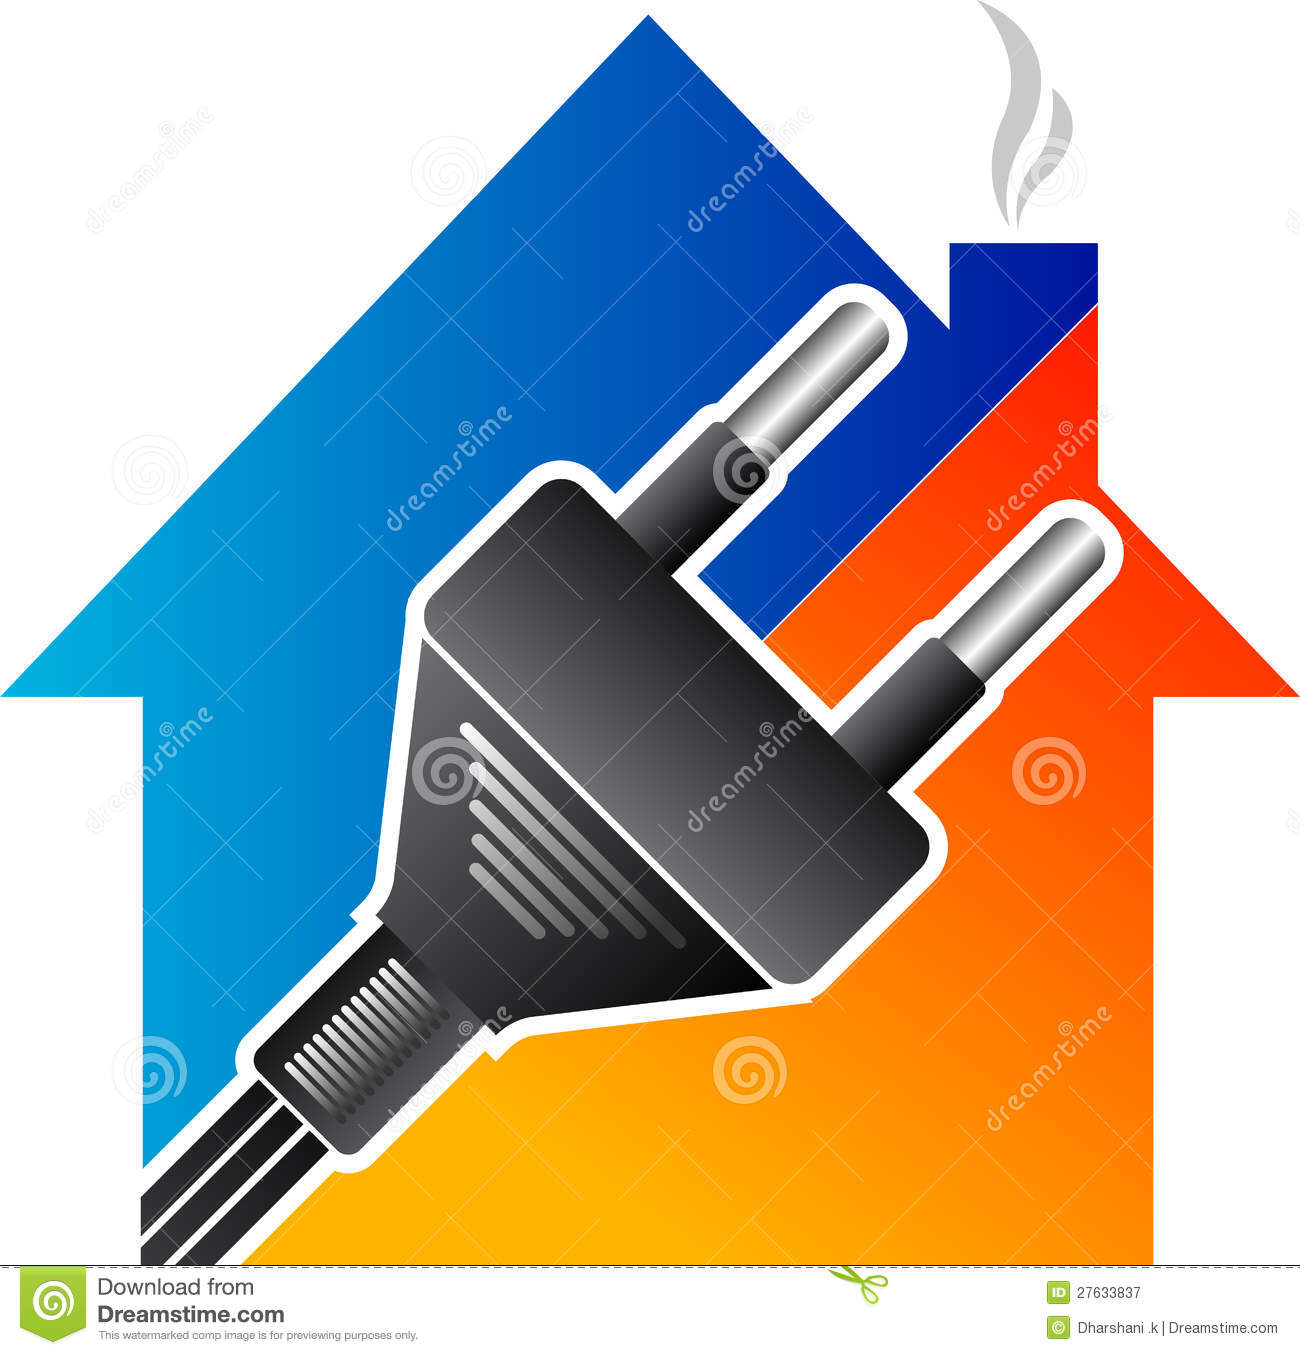 Home Electrical Plug Royalty Free Stock Photography - Image: 27633837